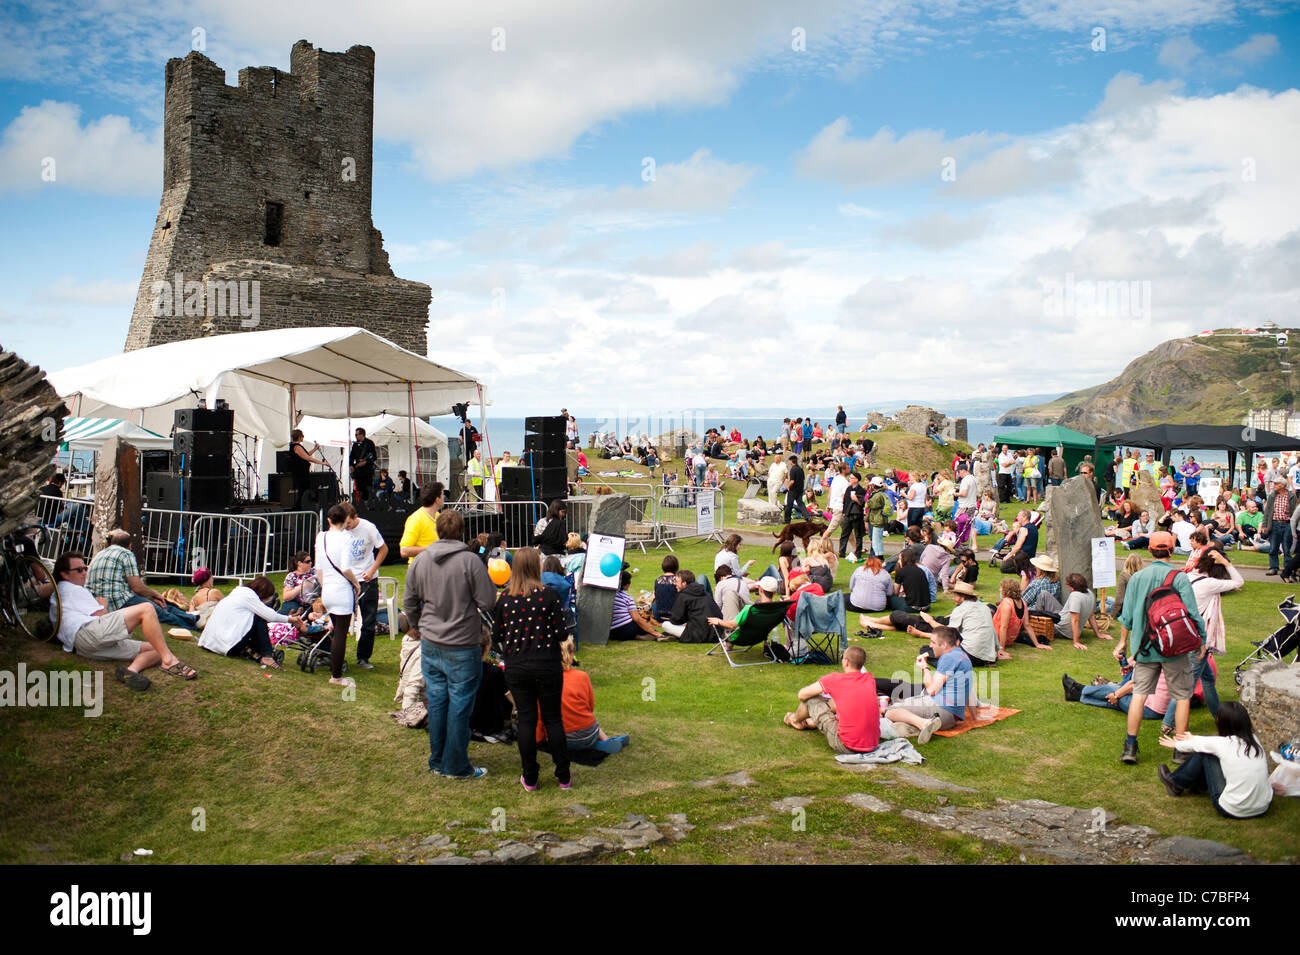 A band playing on stage, Roc y Castell / Castle Rock free music festival Aberystwyth Wales UK - Stock Image